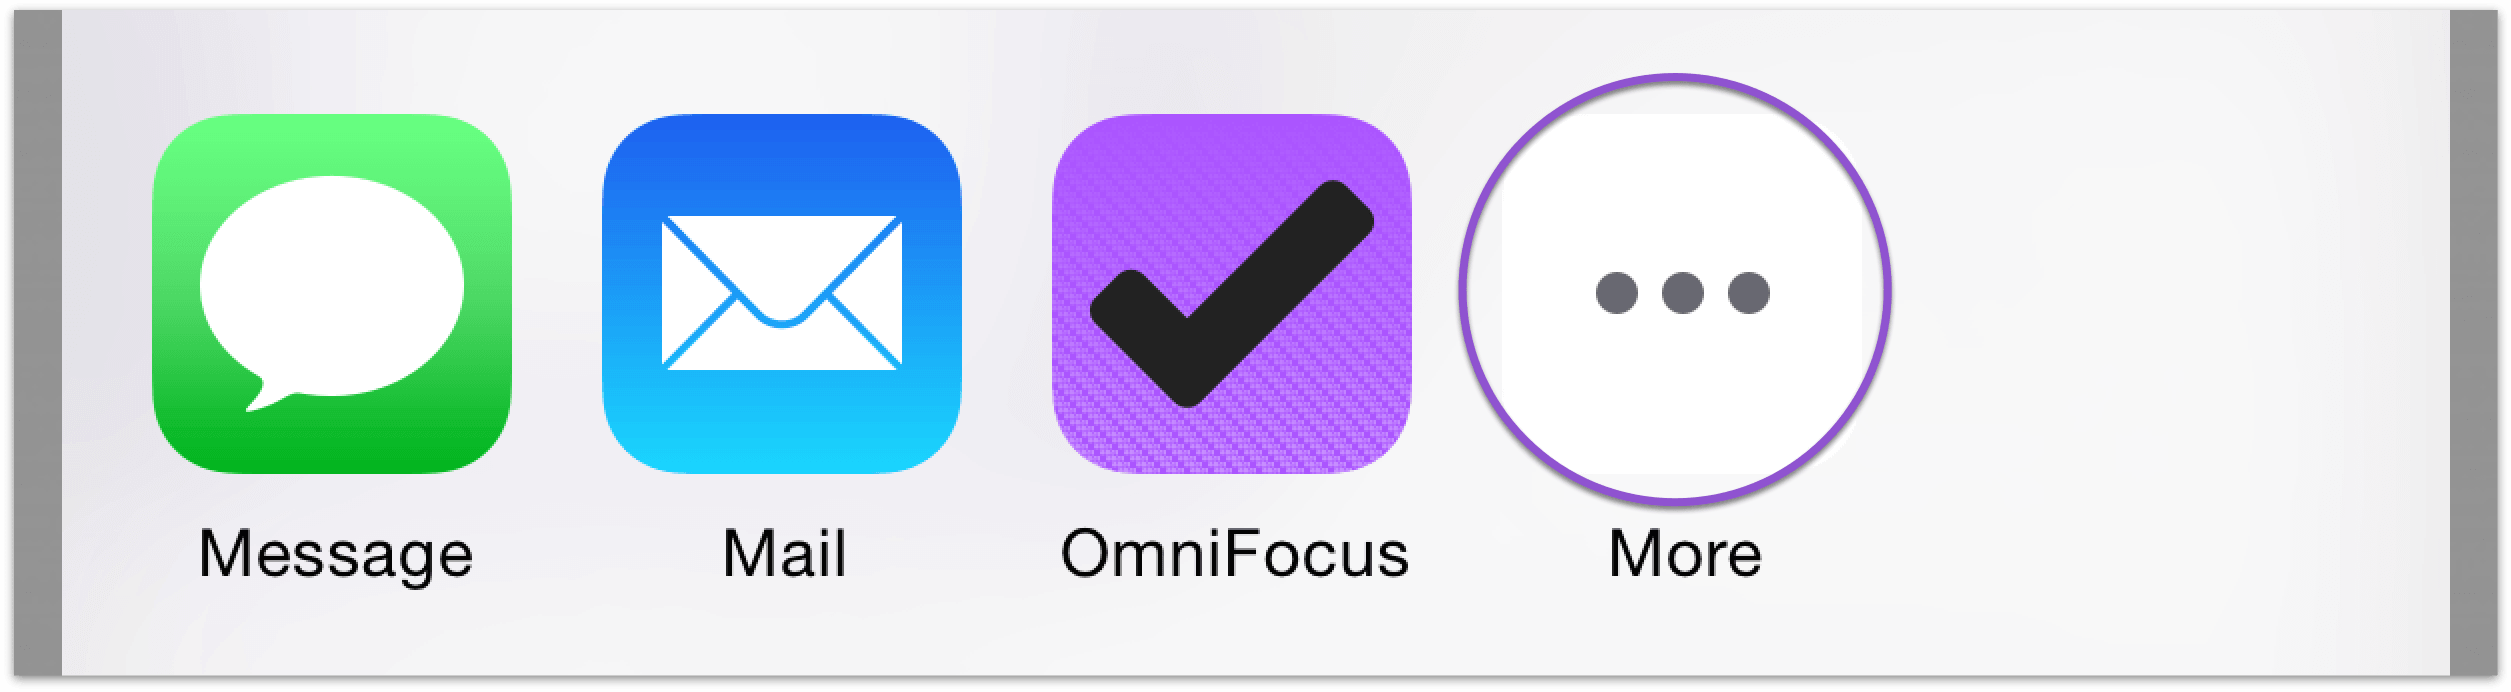 Sharing to OmniFocus for iOS.